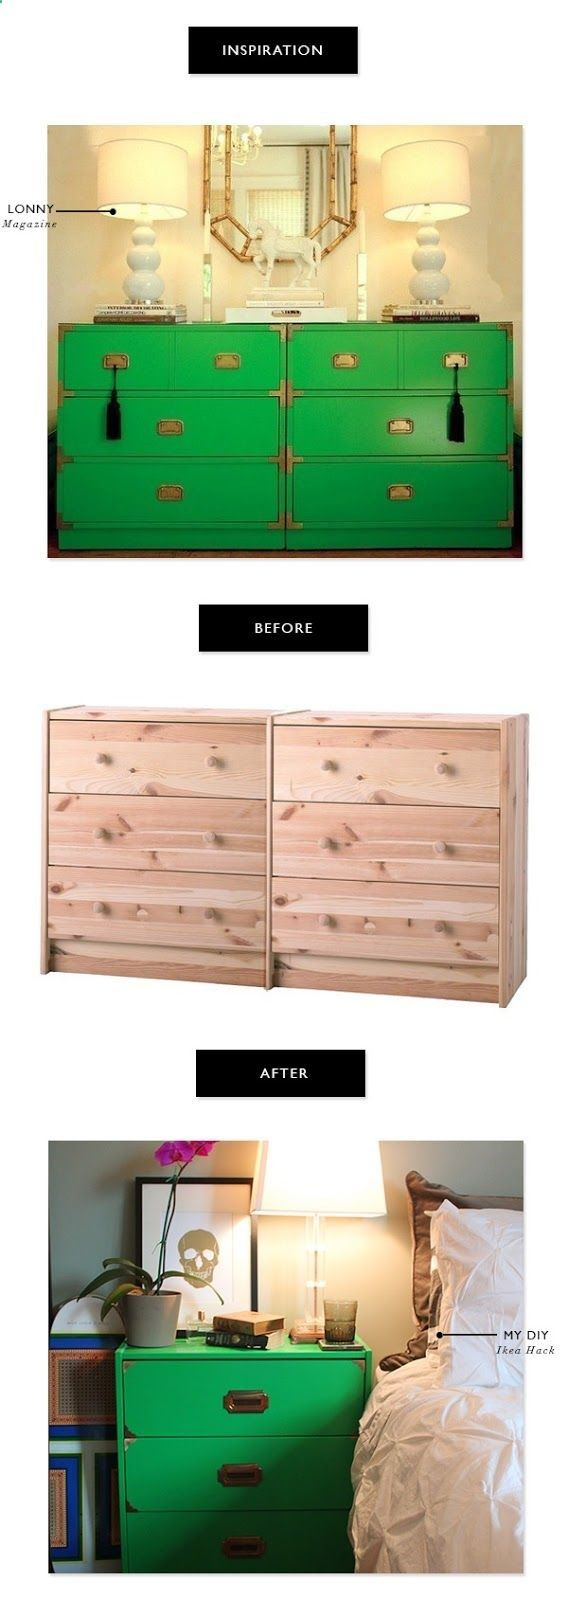 One Day We Will Paint Our Campaign Dressers Fuji Files Diy Files Campaign Dresser Ikea Hack Ikea Diy Campaign Dresser Home Diy